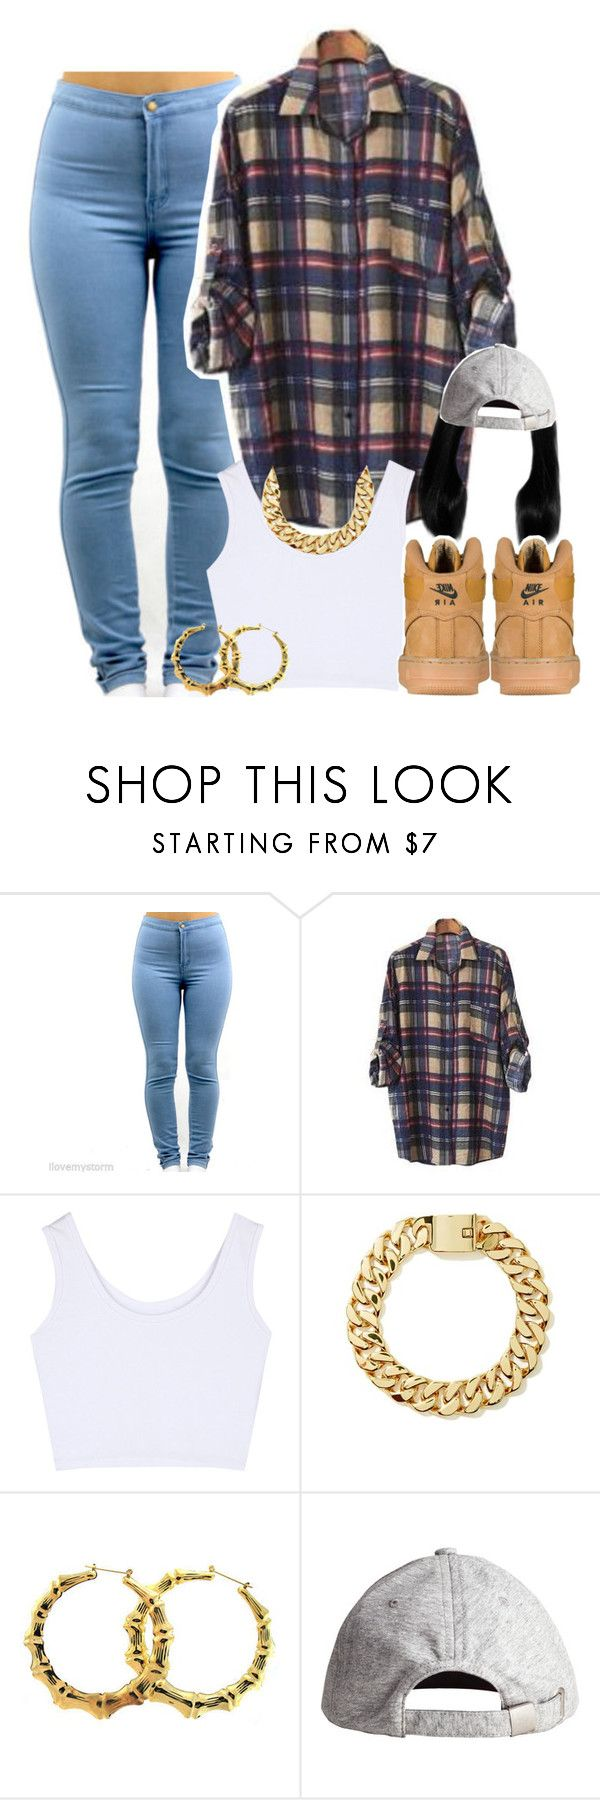 """Untitled #1463"" by lulu-foreva ❤ liked on Polyvore featuring PEPER, H&M and NIKE"